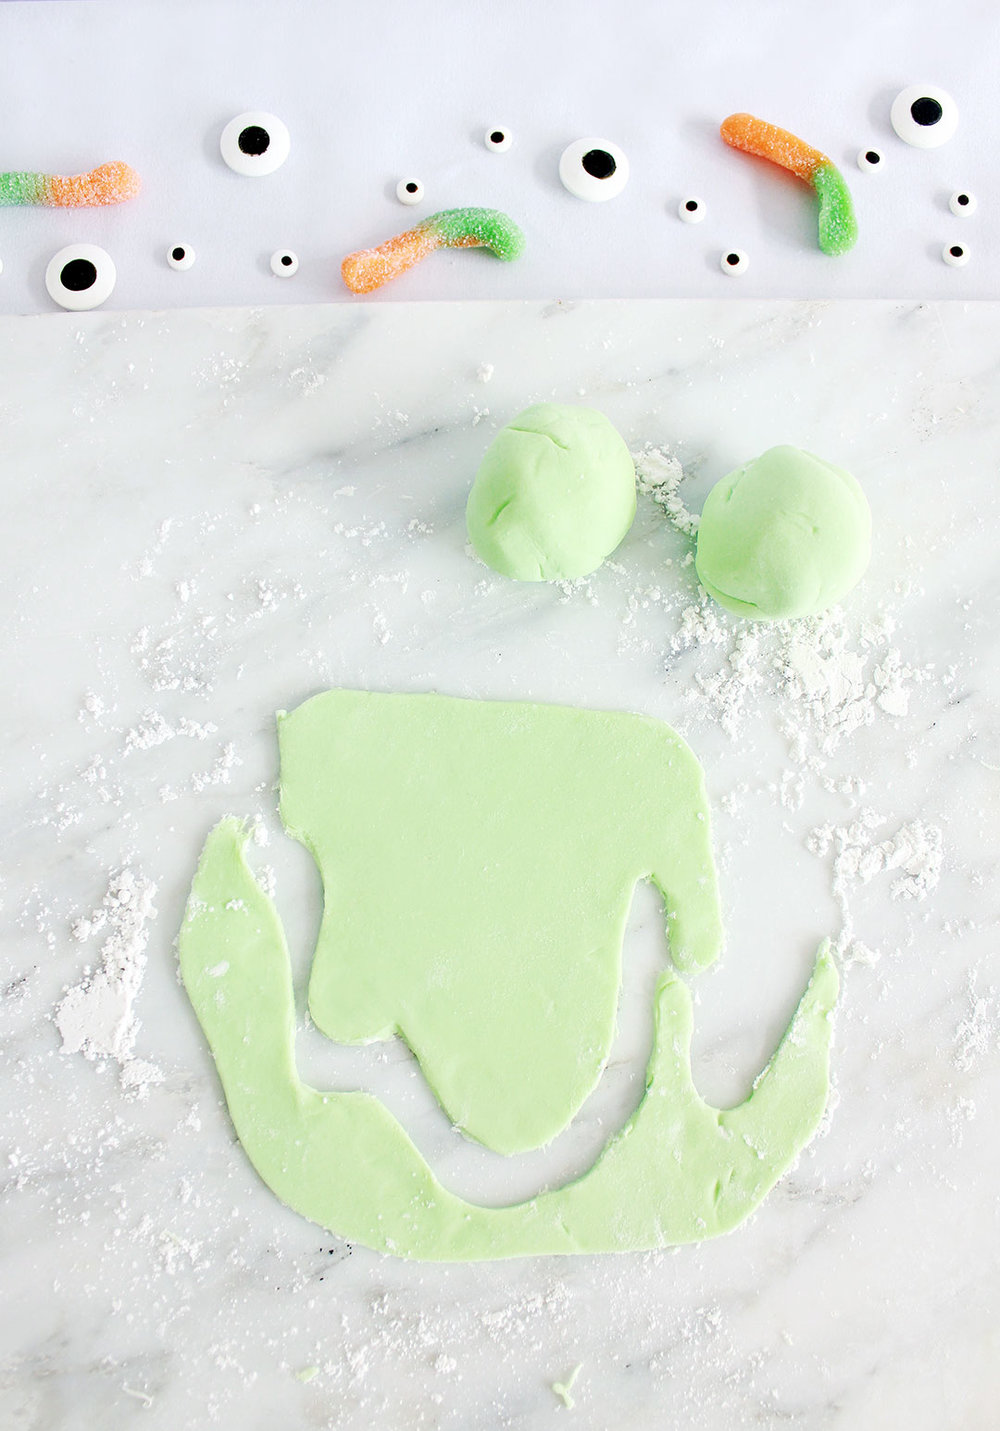 STEP 2 - Add just a dab of green food coloring or icing coloring gel to your fondant. Knead the fondant and add more coloring as needed. Once you're satisfied with your color, separate the fondant into separate little balls (count the number of drinks you will have). Then roll out the fondant and cut out a drip shape. Feel free to play around with the shape. They don't have to all be the exact same size, and they can be long or small drips based on your preference. Once you're done, hang each fondant piece over your glasses and press them onto the glass to keep them in place.